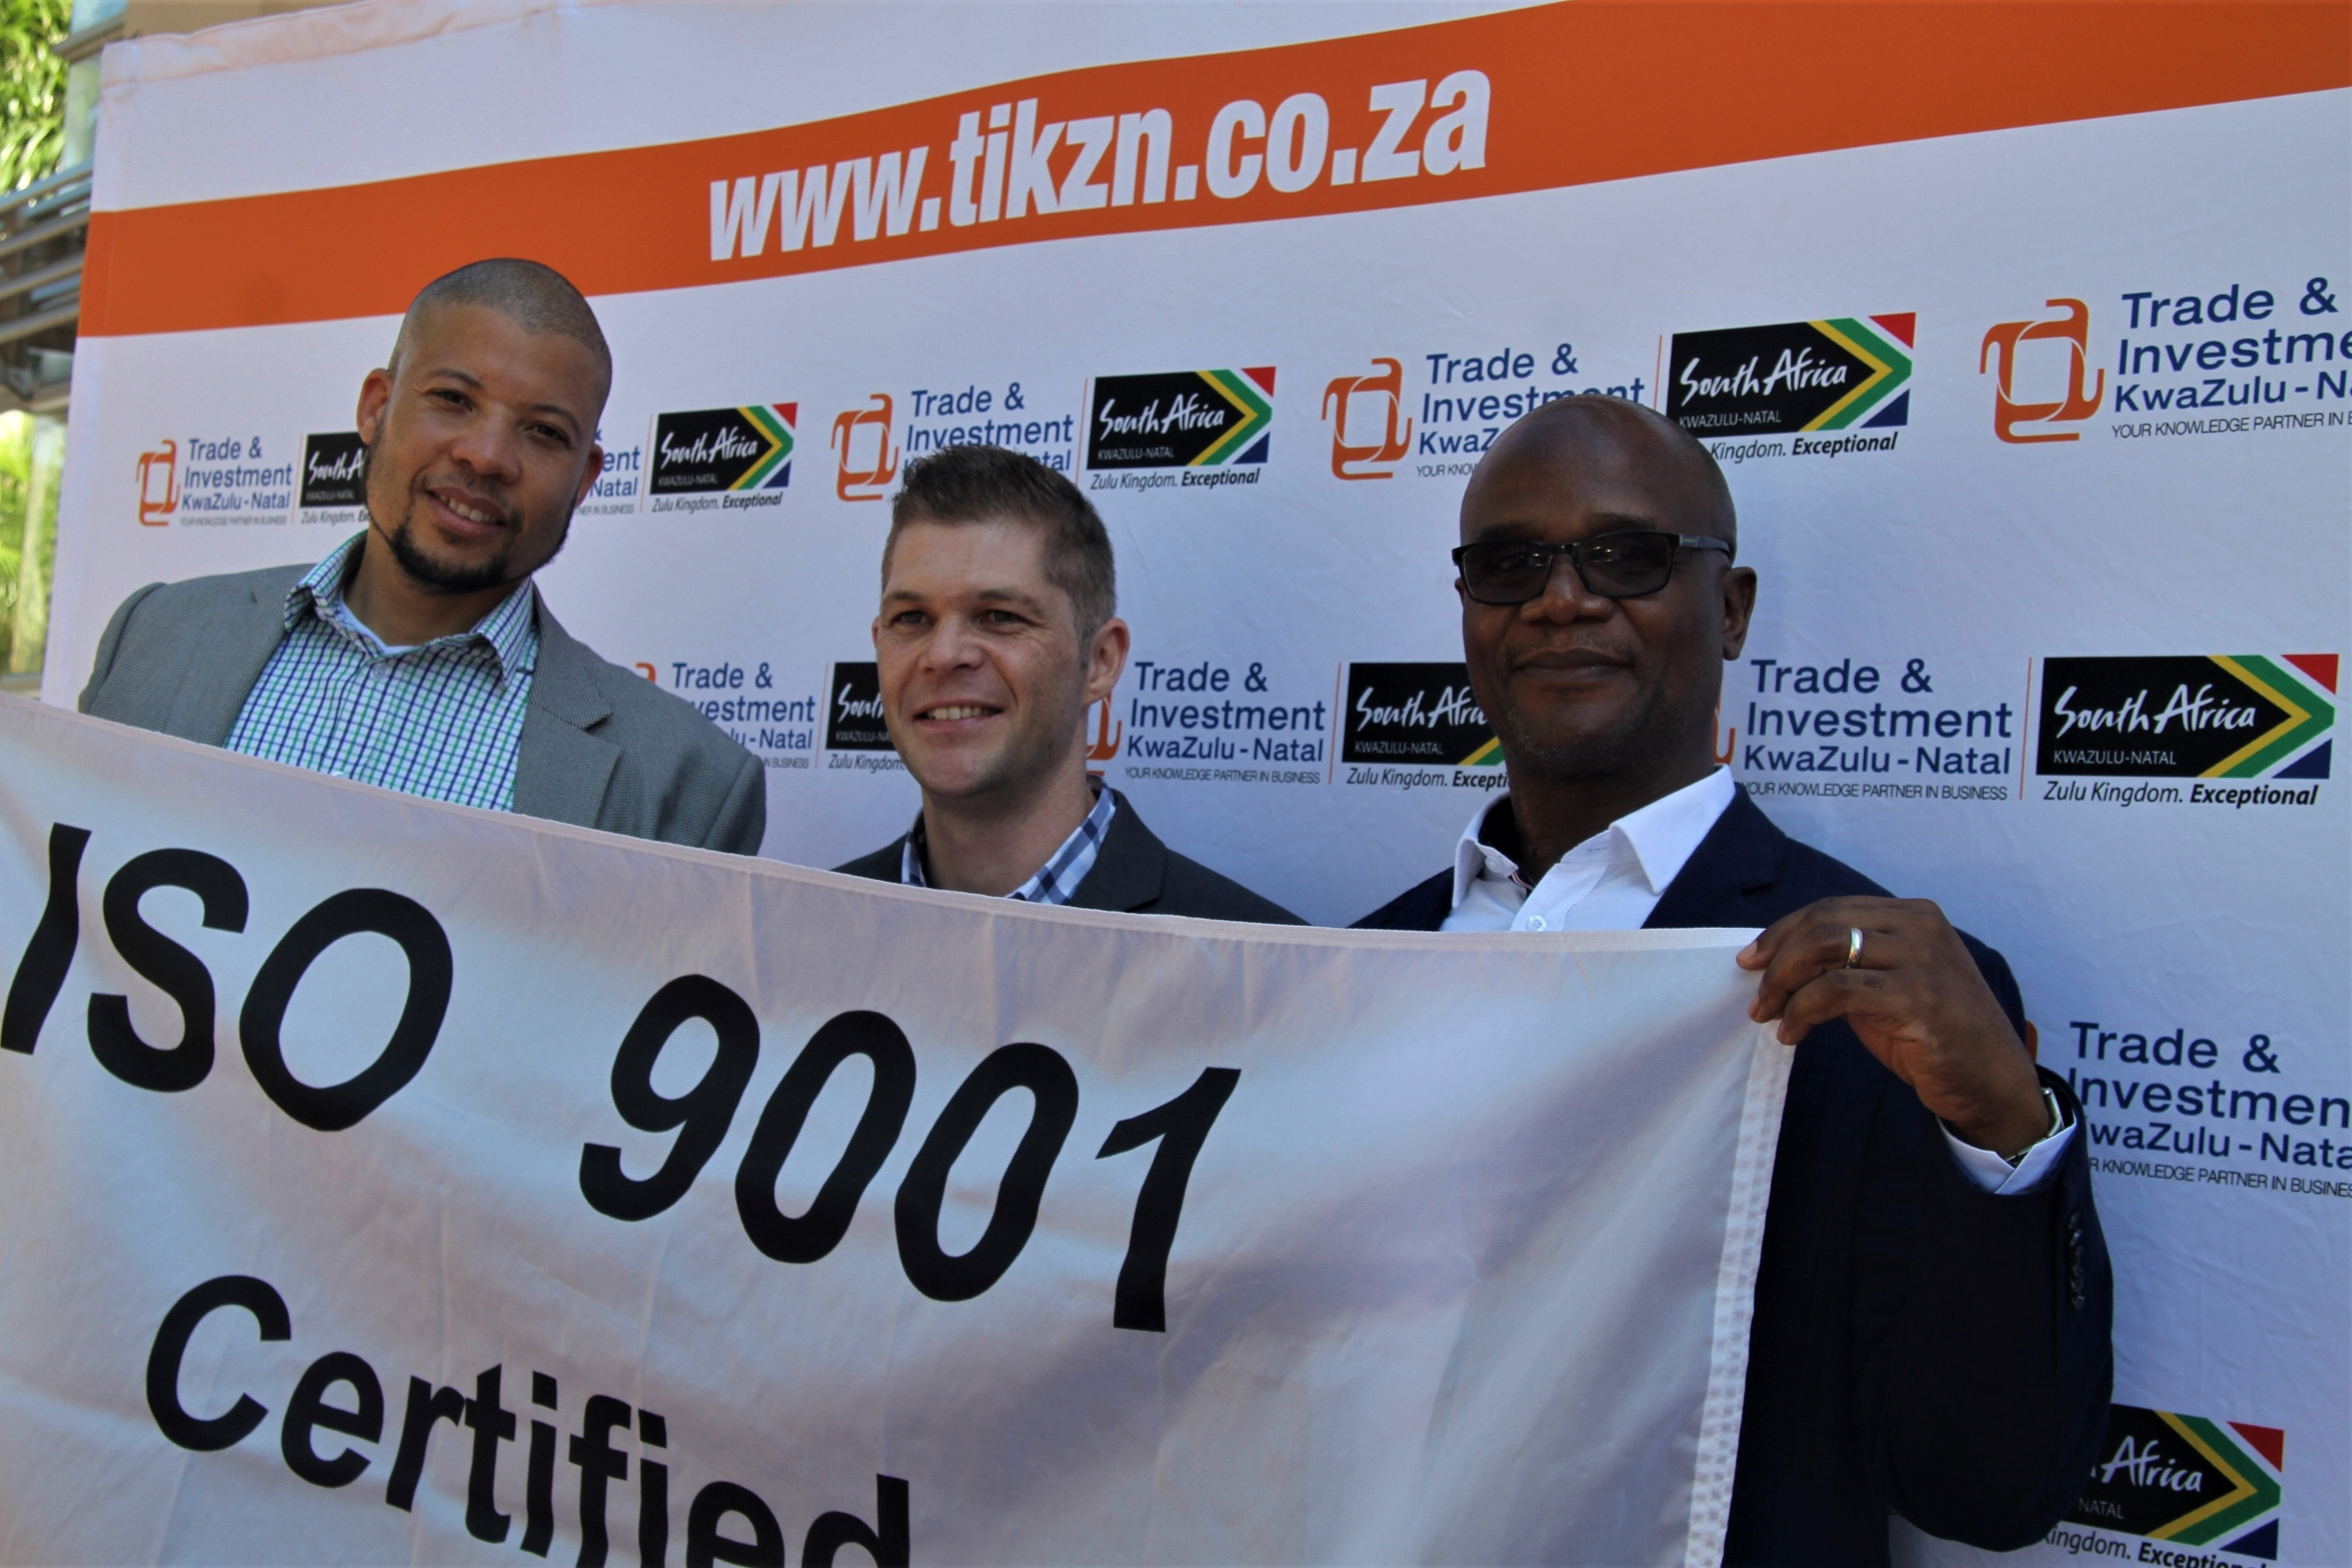 TIKZN joins the list of businesses internationally recognised for quality management systems